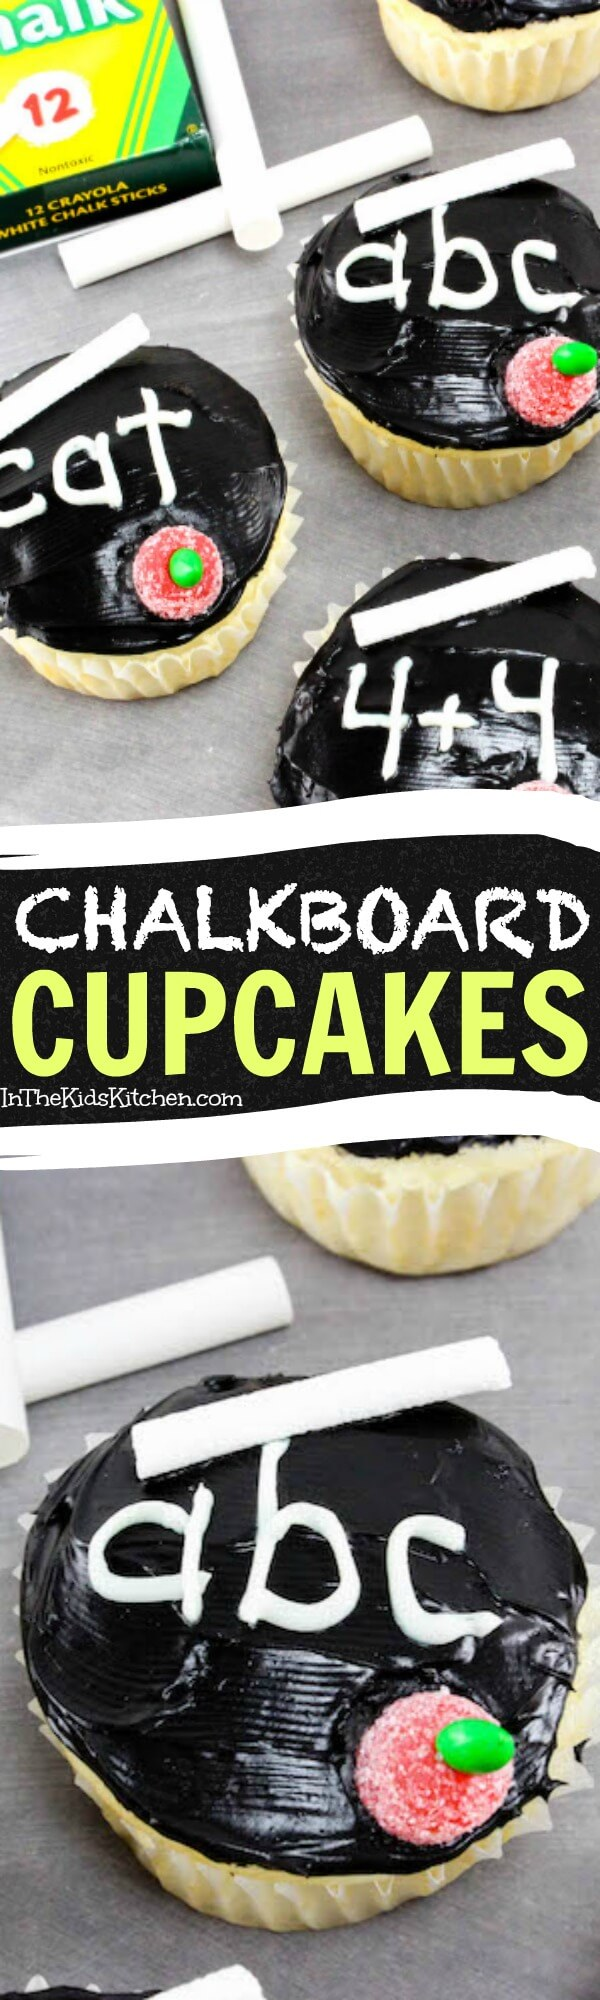 Get creative and celebrate a new school year with these super-cute chalkboard cupcakes! A fun teacher gift for back to school.